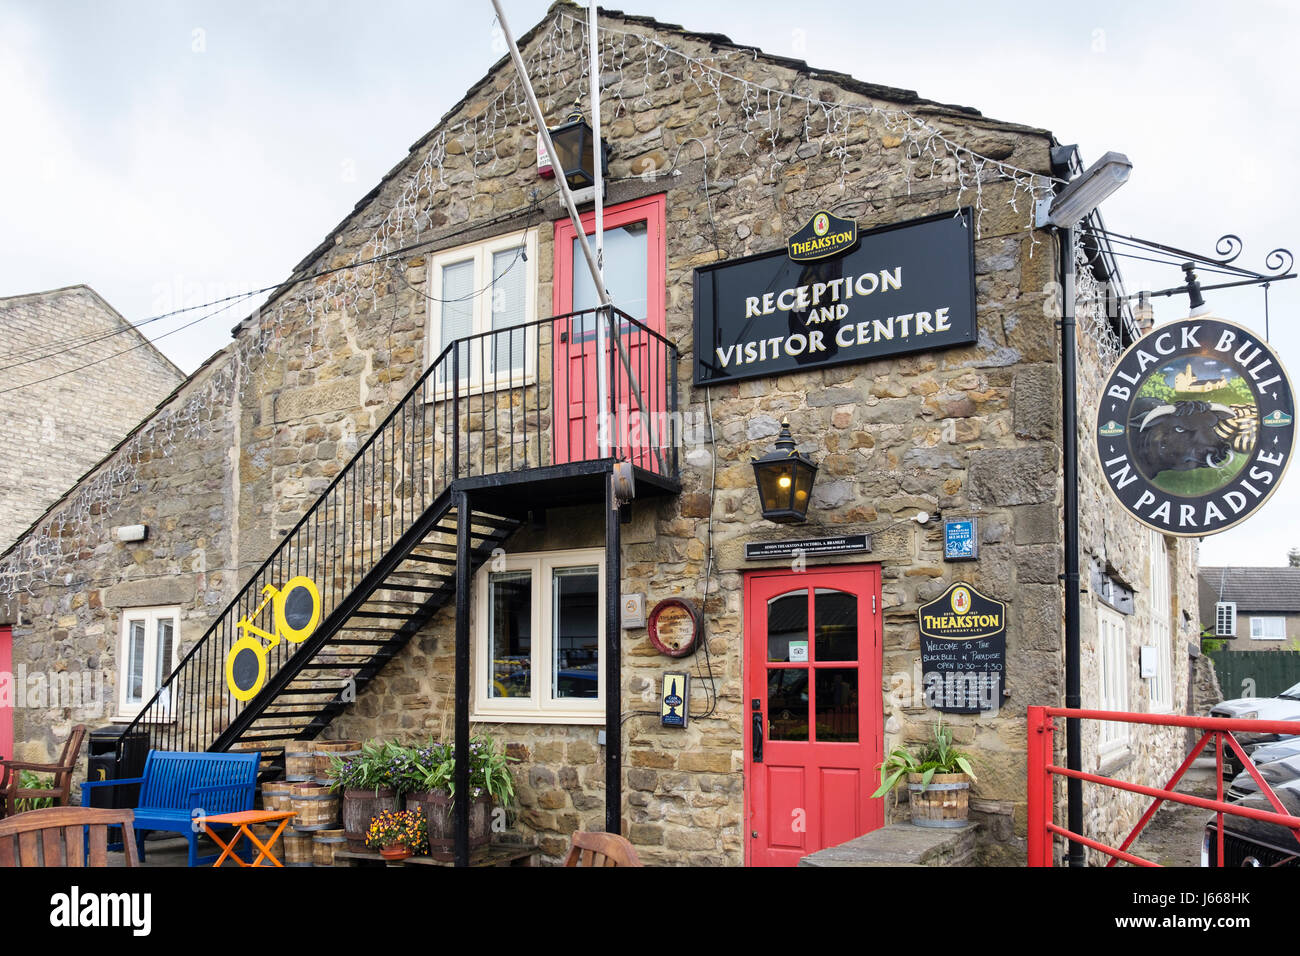 Black Bull in Paradise Theakston Brewery Reception and Visitor Centre. Masham, Wensleydale, North Yorkshire, England, - Stock Image